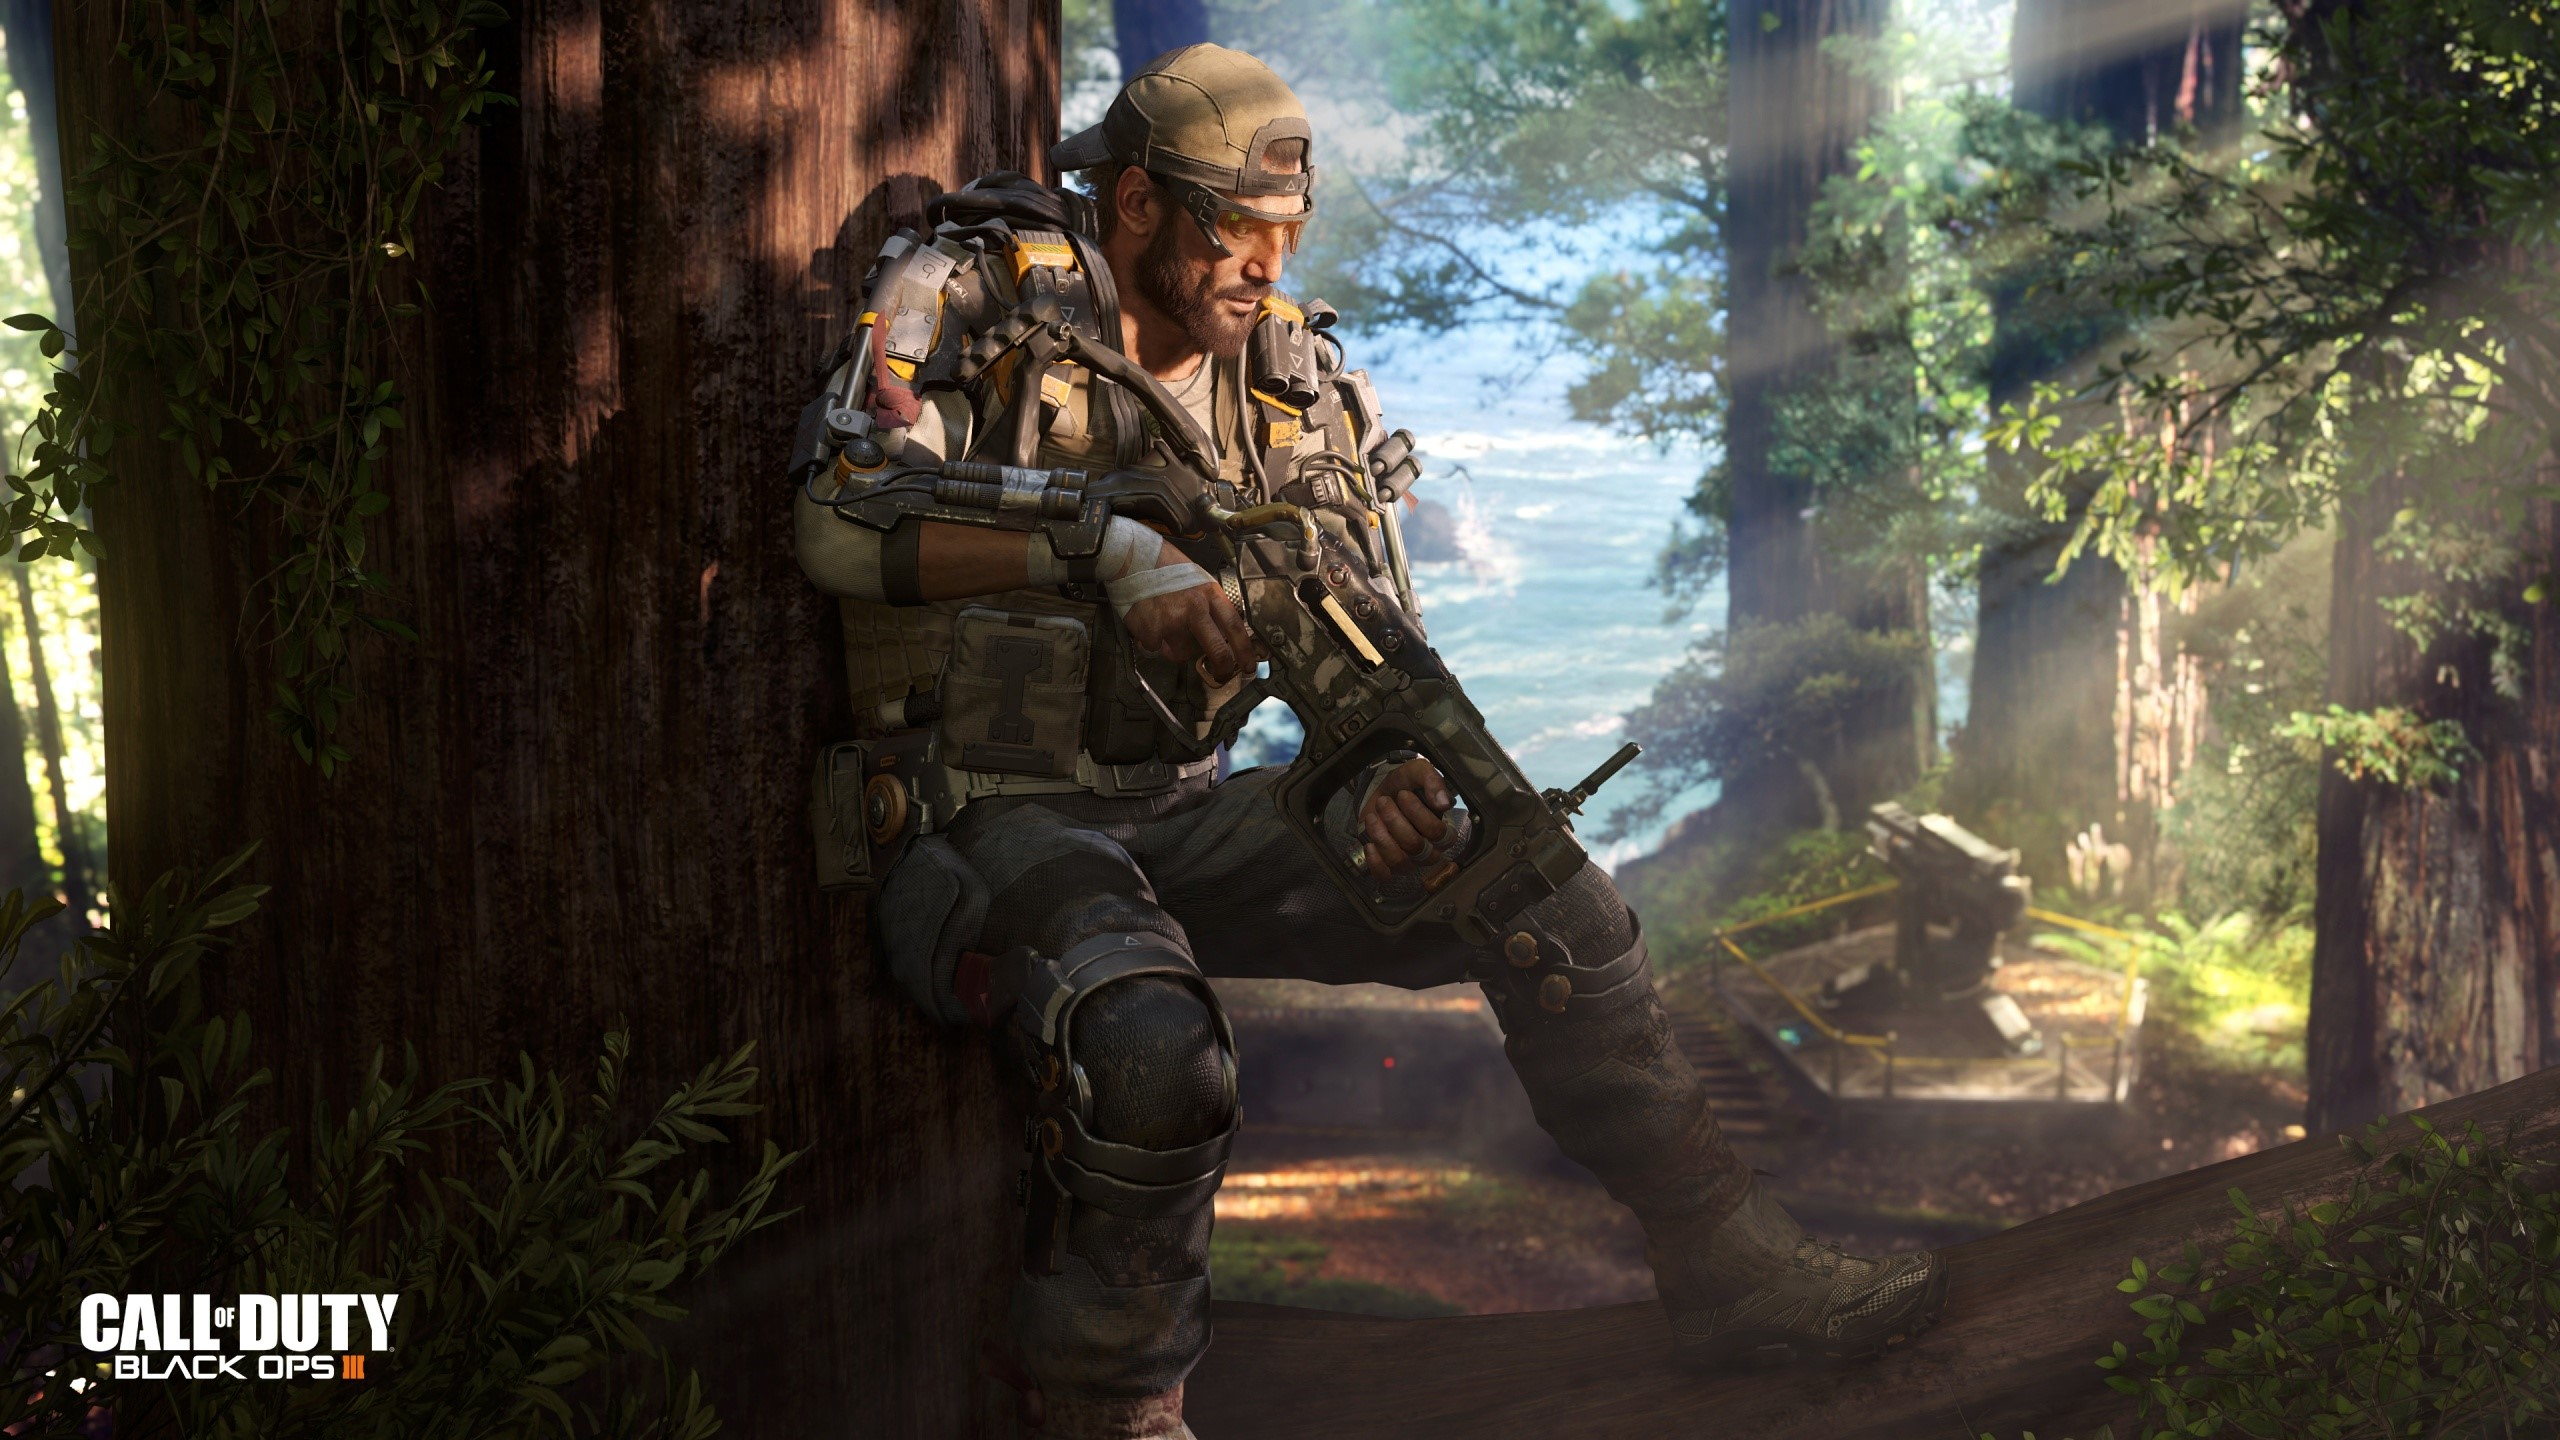 Specialist Nomad Of Call Of Duty Black Ops 3 Wallpaper 2k Quad Hd